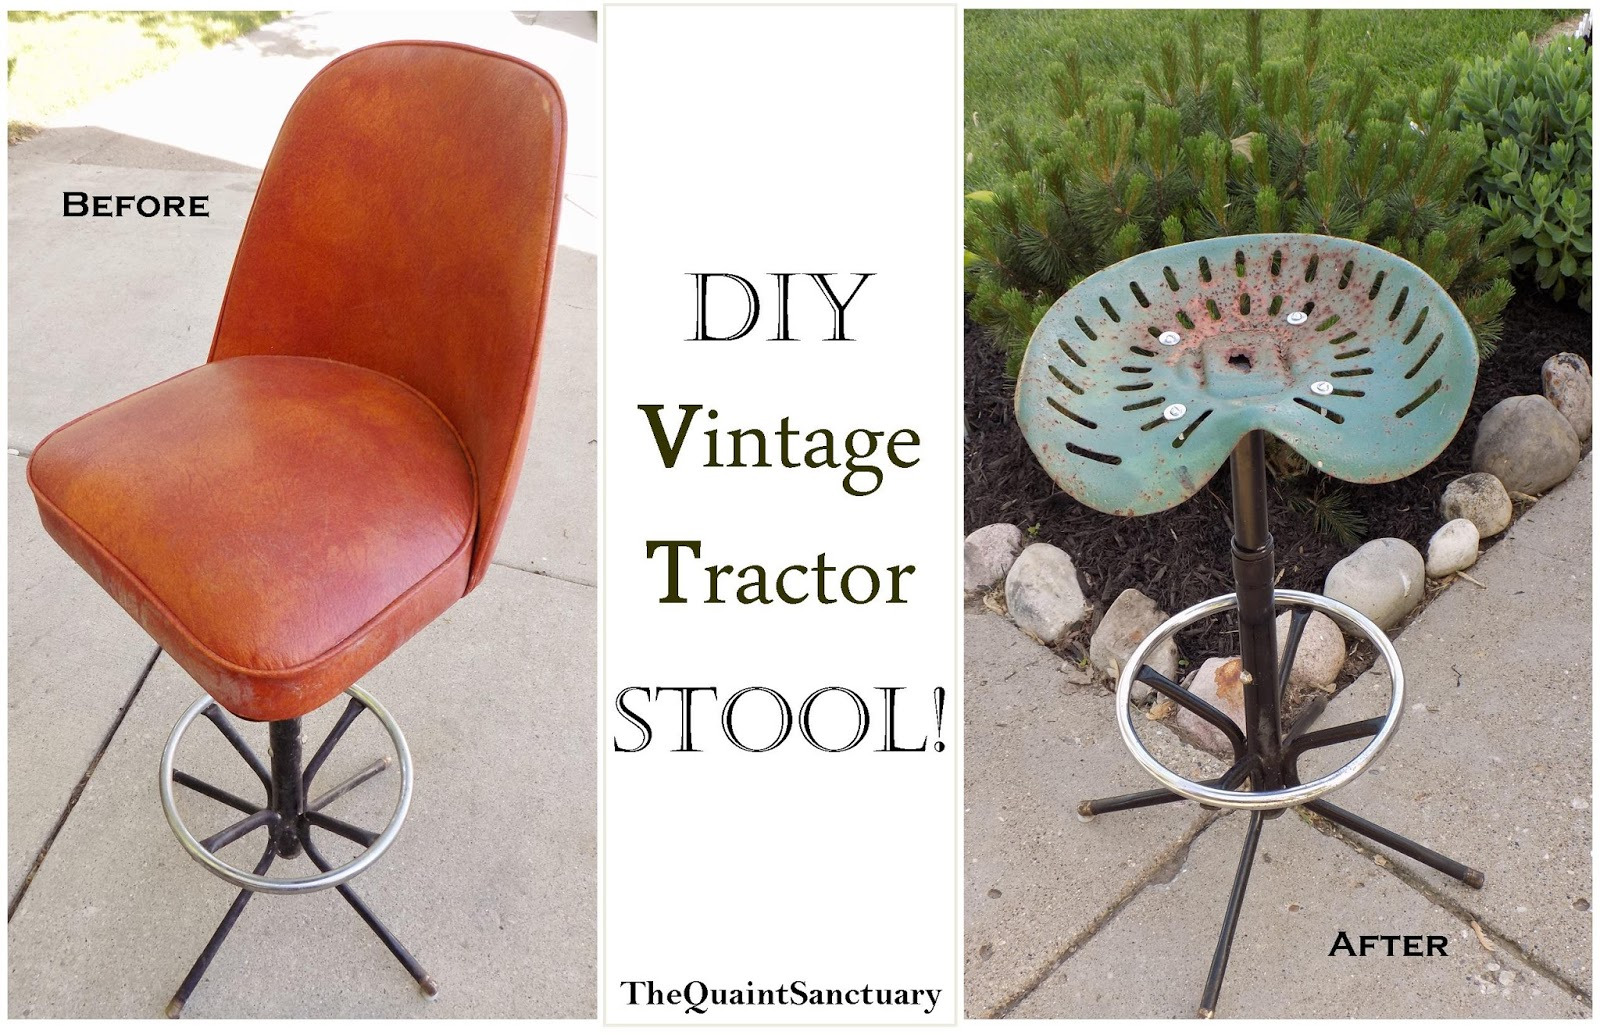 The Quaint Sanctuary DIY Vintage Tractor Stool  : tractor from thequaintsanctuary.blogspot.com size 1600 x 1035 jpeg 417kB